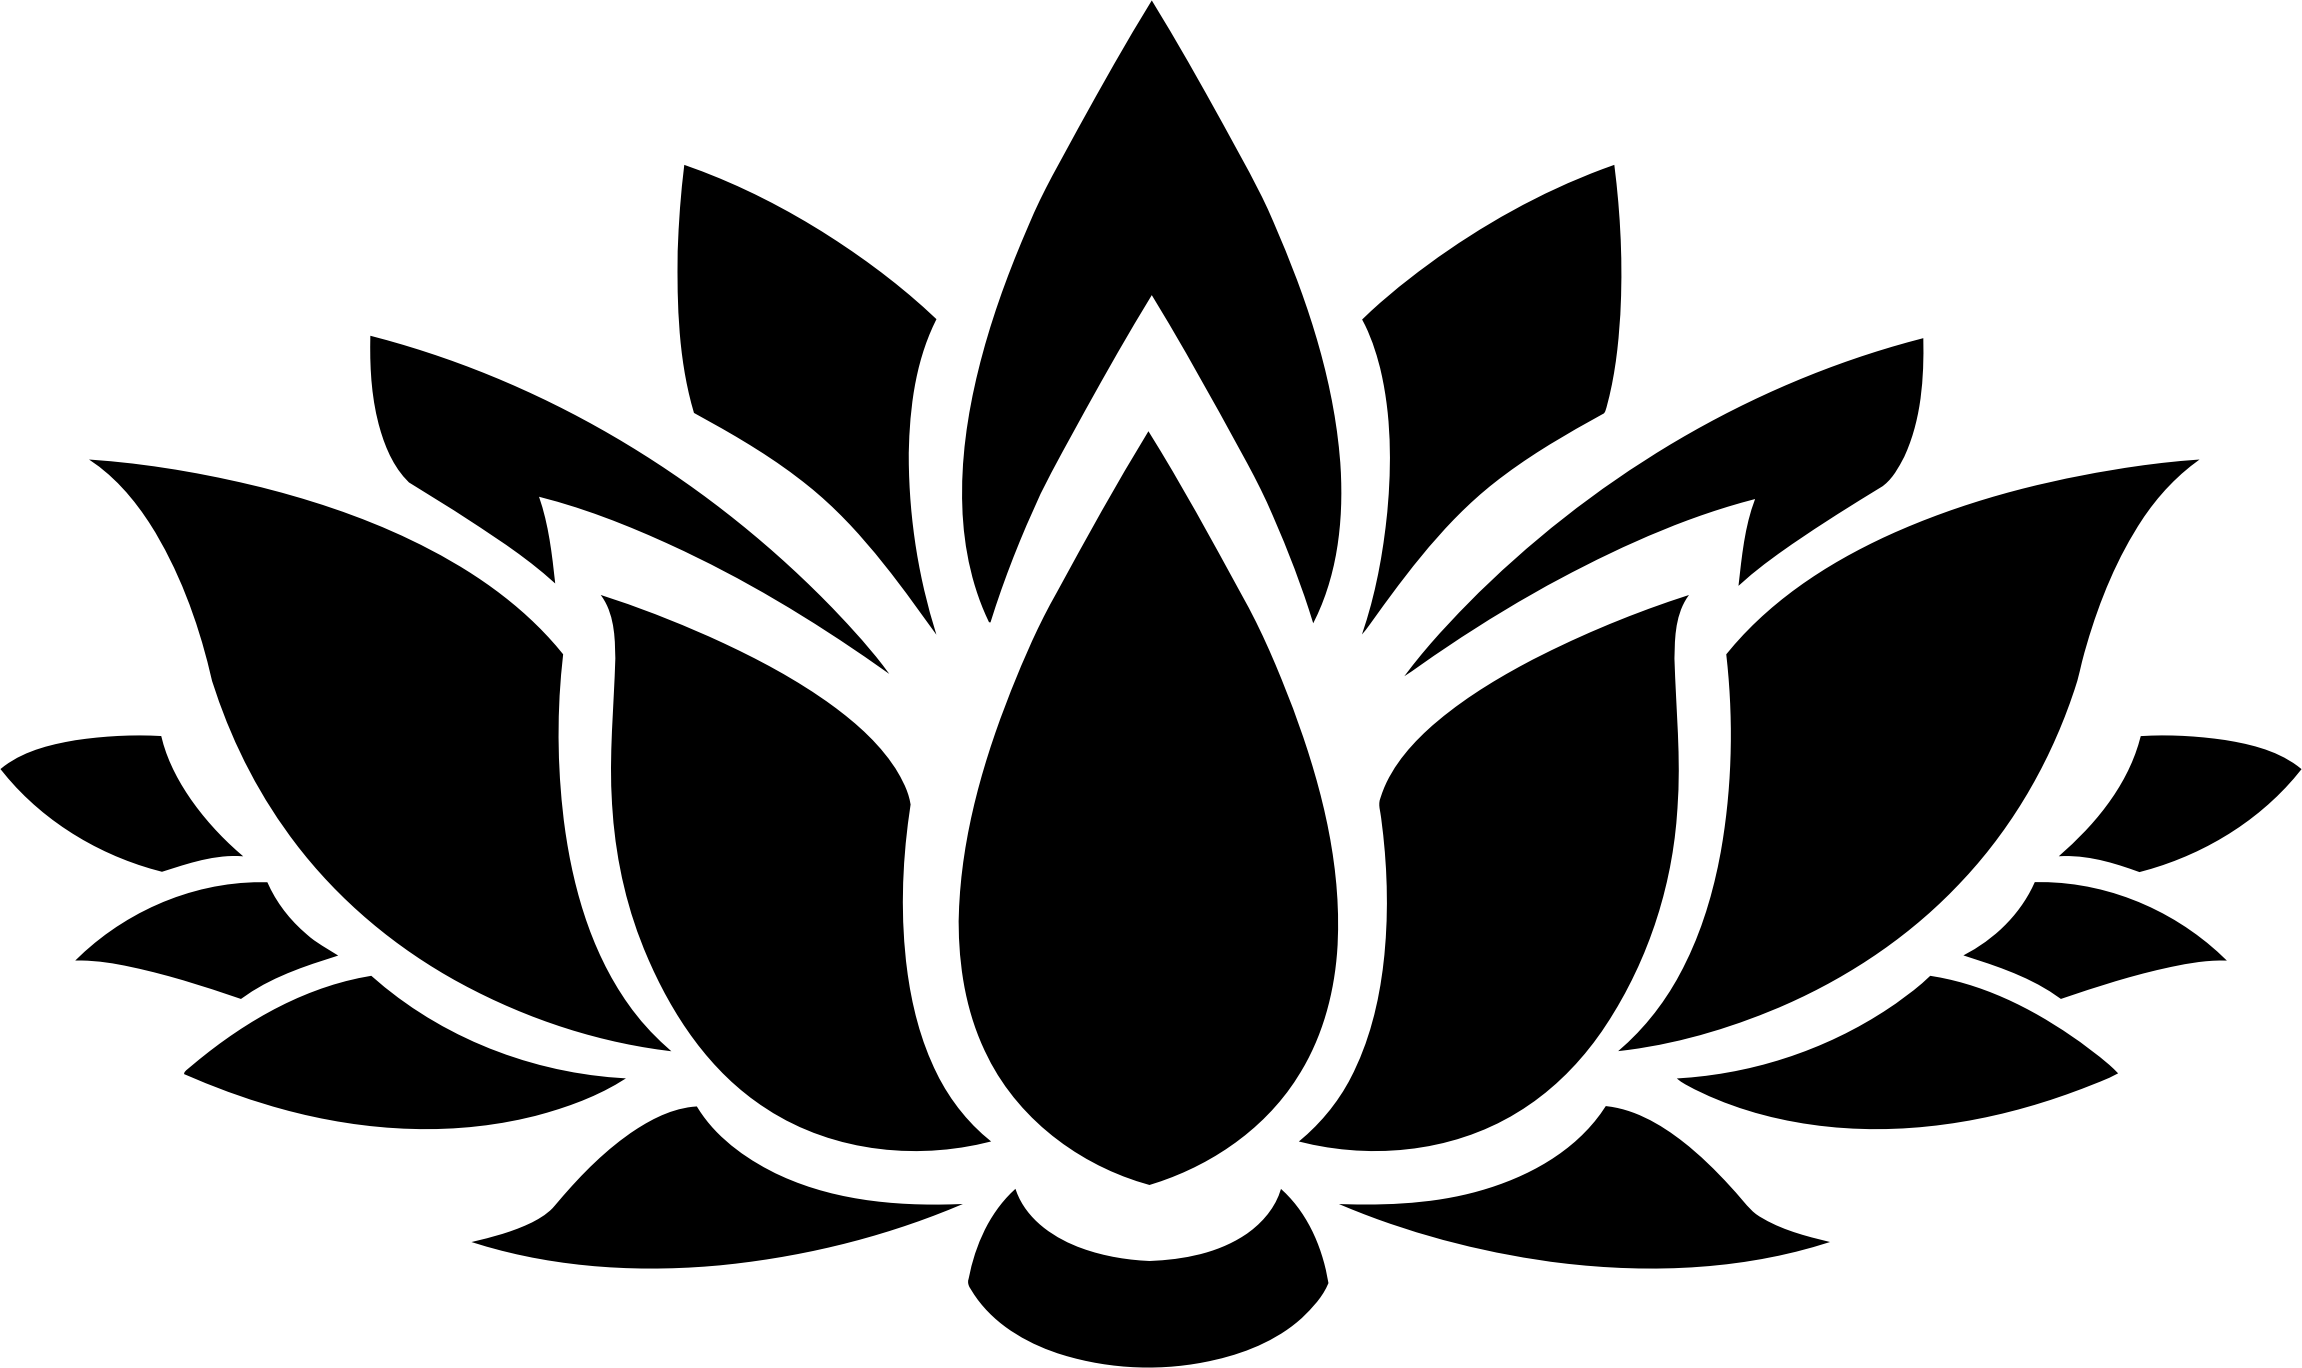 Lotus Flower Silhouette 6 Icons PNG